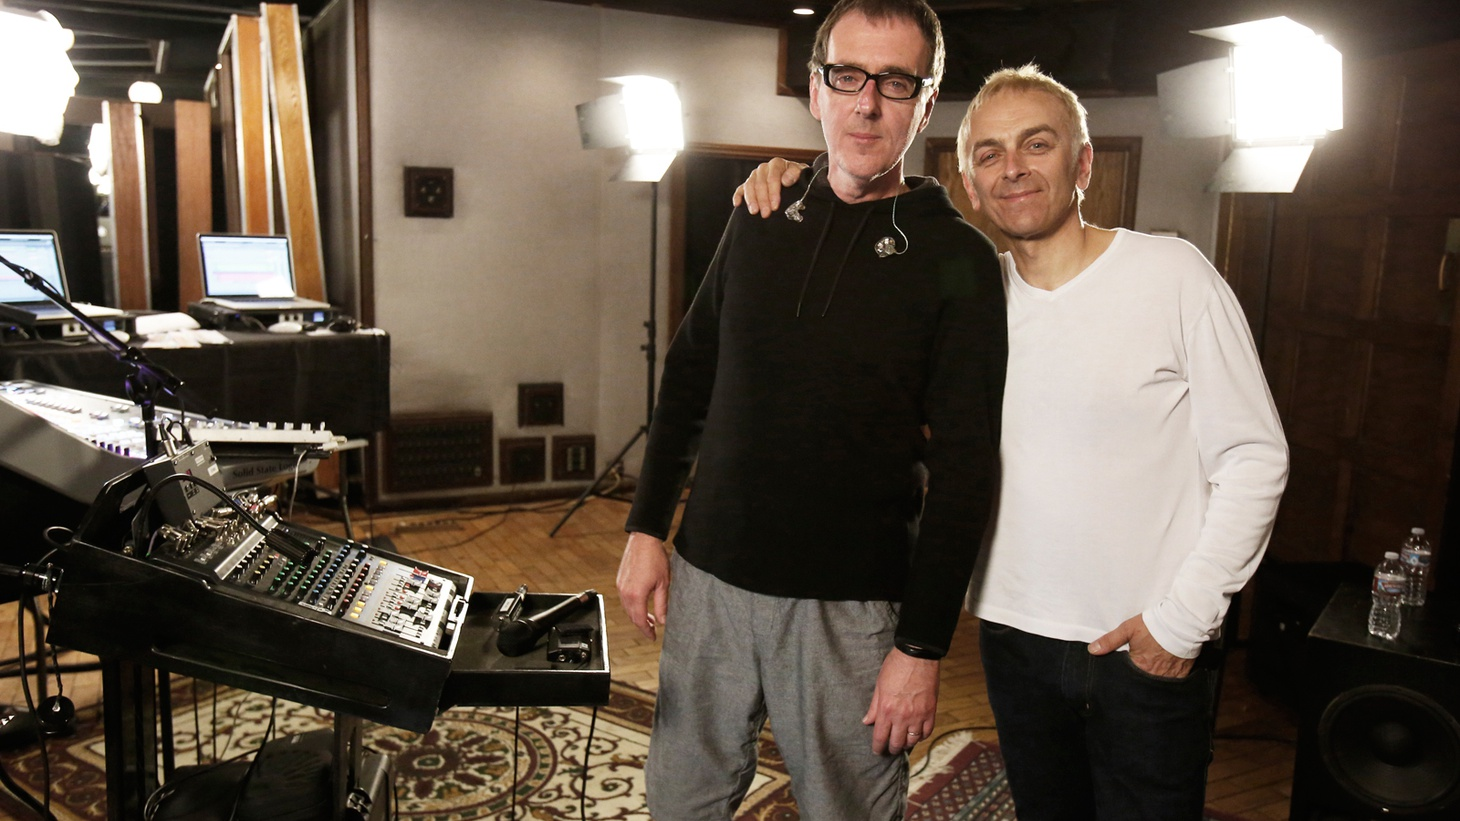 The latest release from Underworld is one of the most played records at KCRW right now. More than 30 years into their career, the electronic music pioneers continue to impress us.